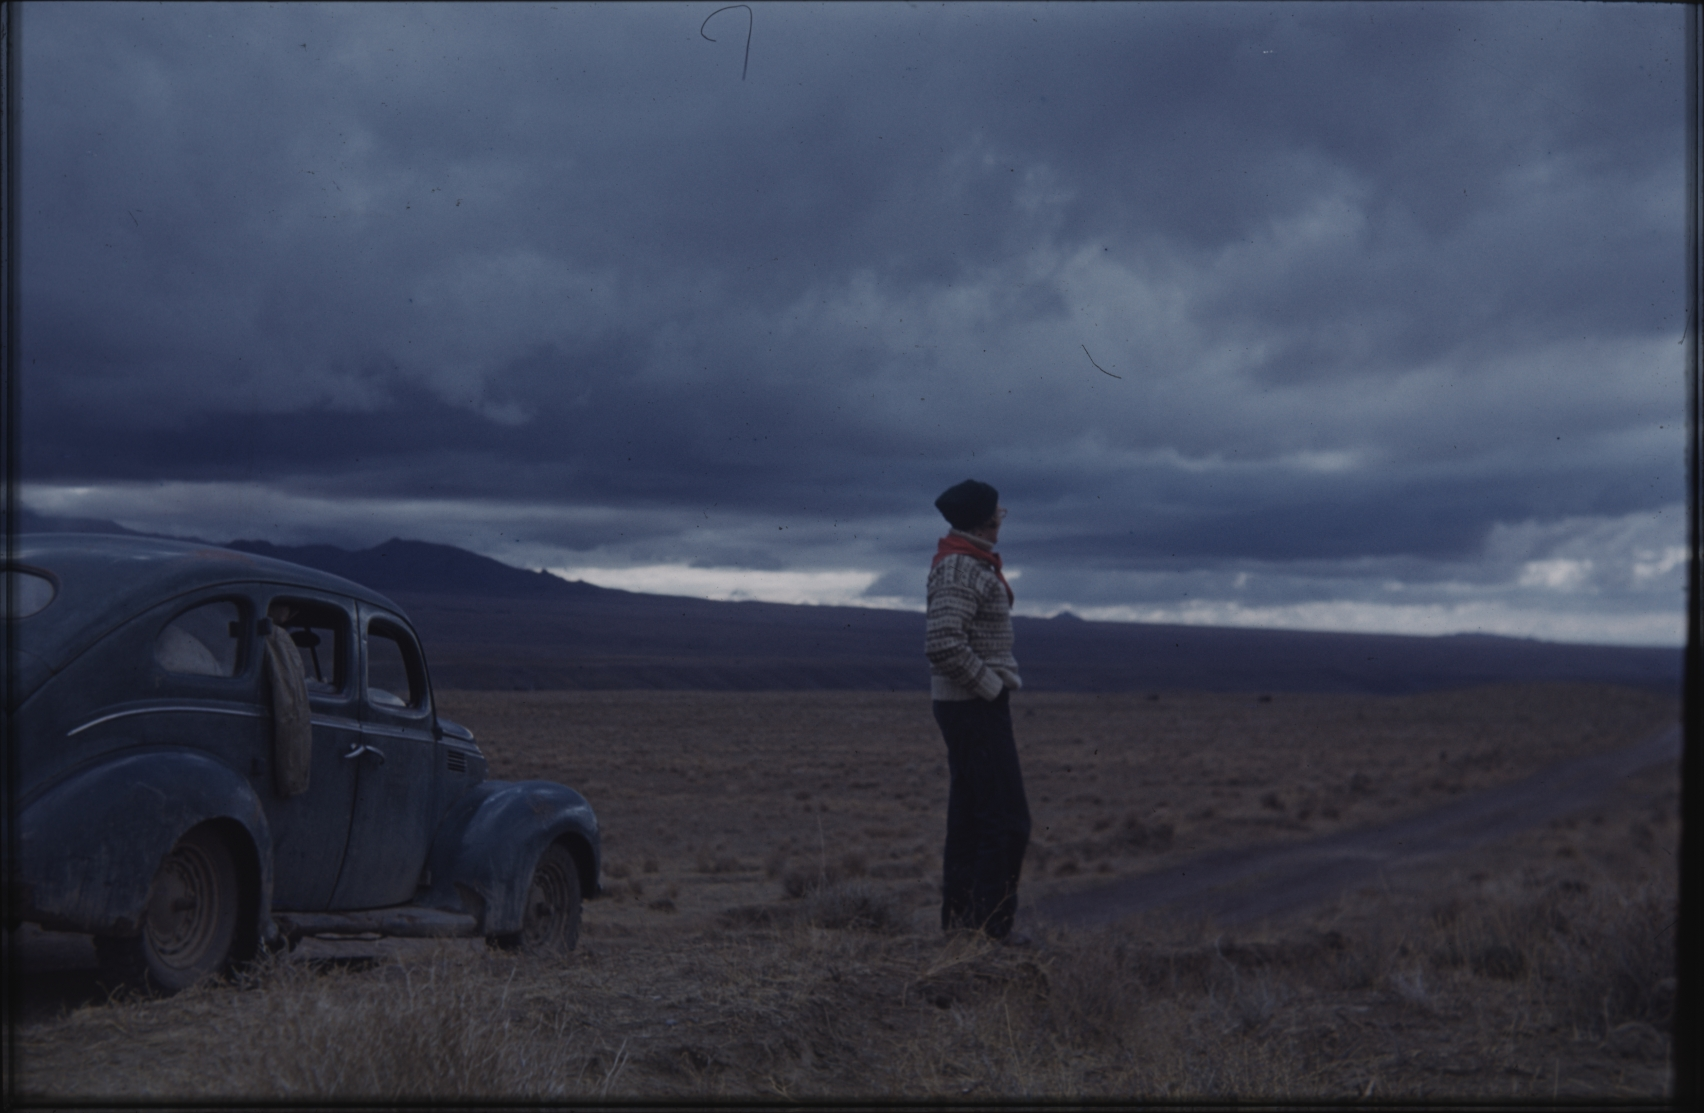 Marianne Ferdinand partook in part of the expedition with her husband, Klaus. Here travelling by car. In 1953, only approximately 5,000 private cars were registered in Afghanistan, so they met many people on their way who had never seen a car before. The Henning Haslund-Christensen Memorial Expedition, 1953-'55. Photo: the Moesgaard Museum archives